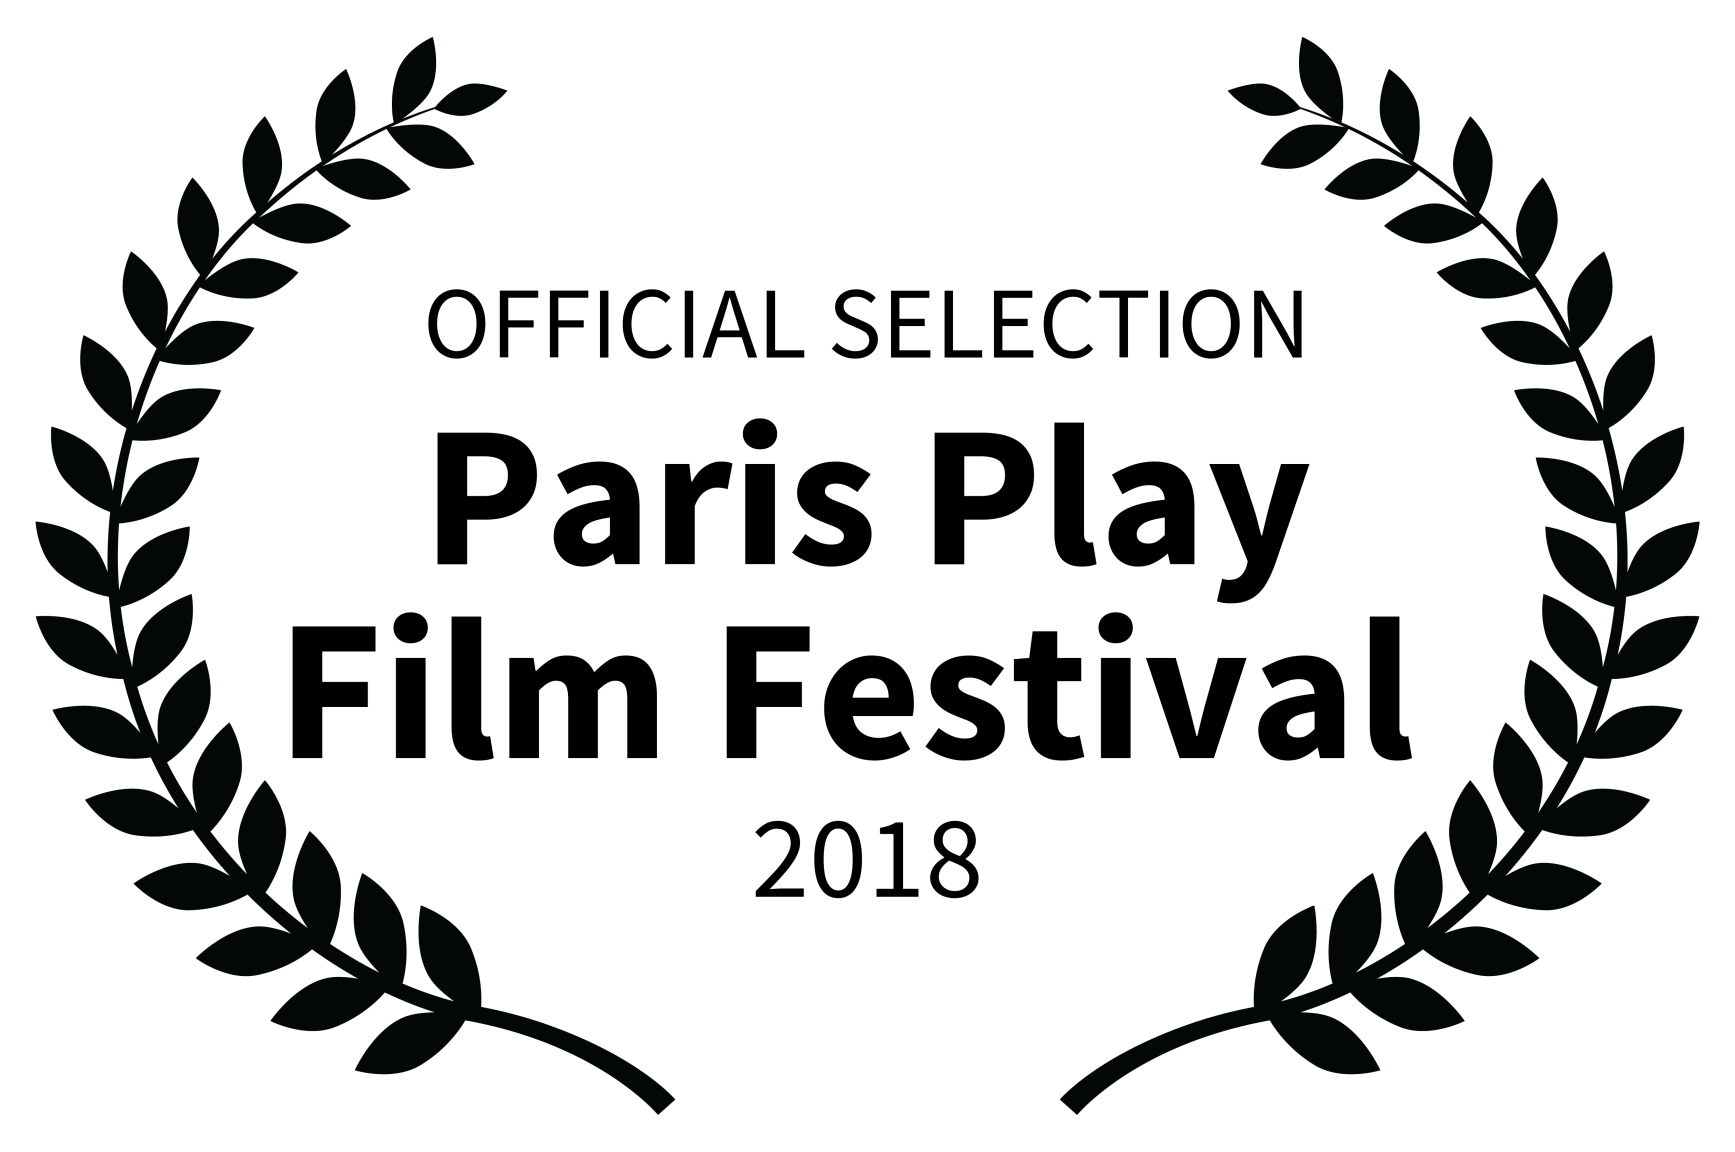 OFFICIAL SELECTION - Paris Play Film Fes